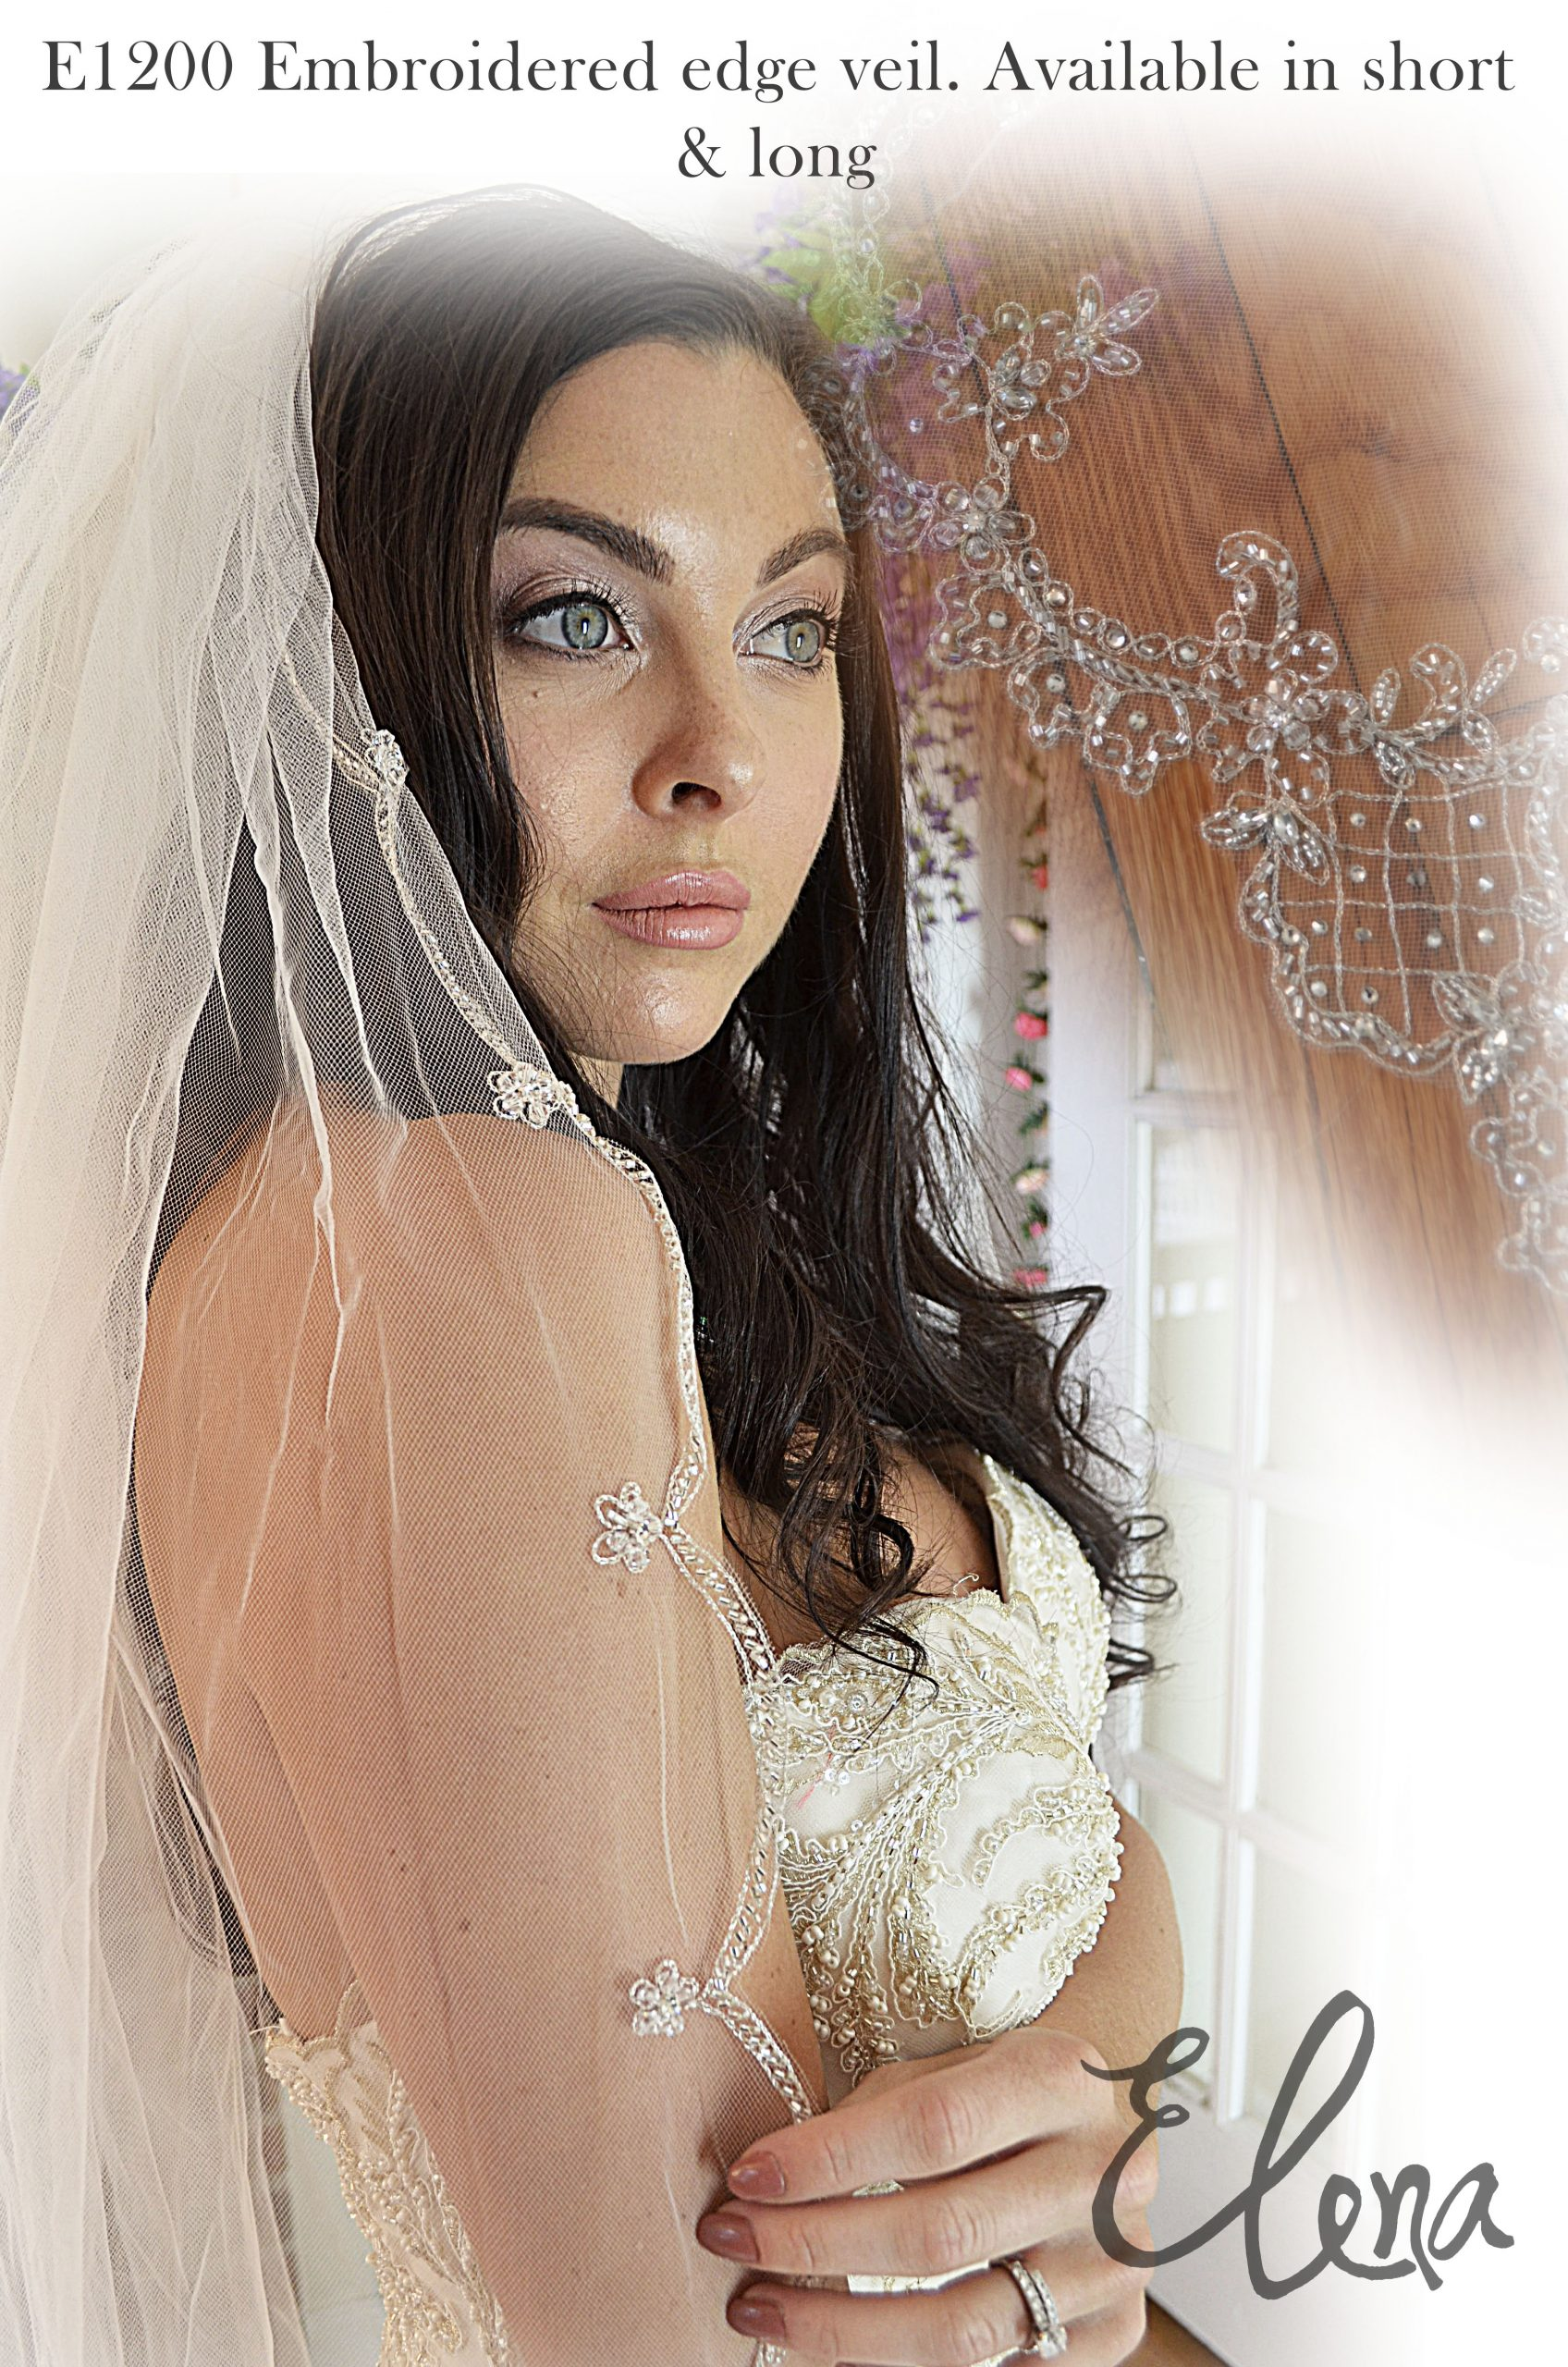 Elena E1200  Embroidered edge veil. Available in short & long